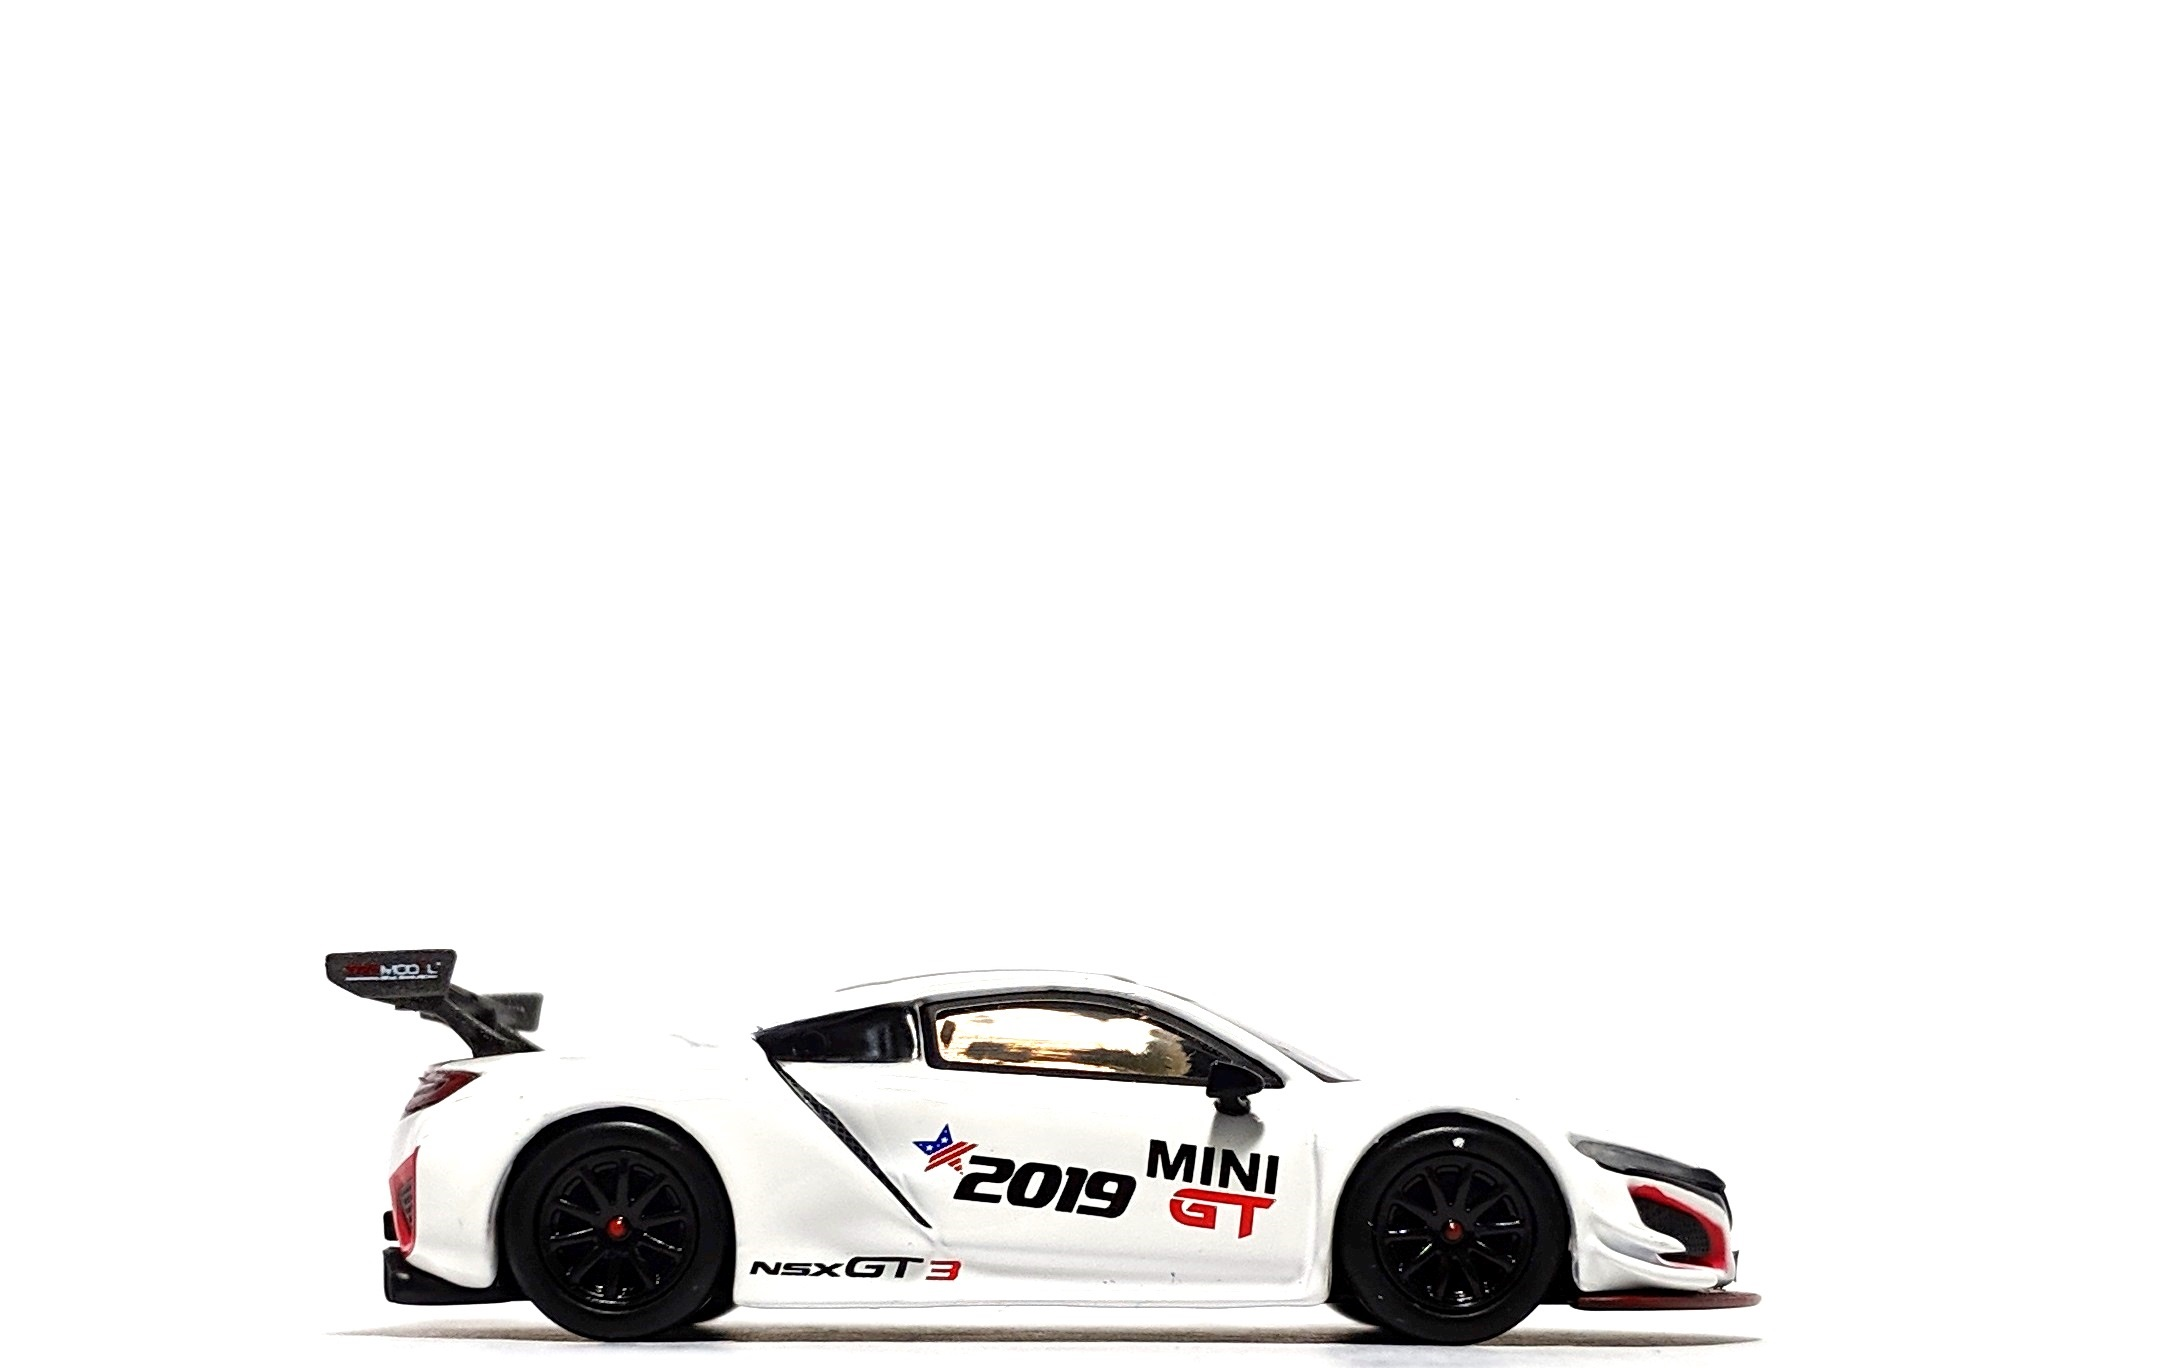 Honda NSX GT3 2019 Toy Fair, by Mini GT